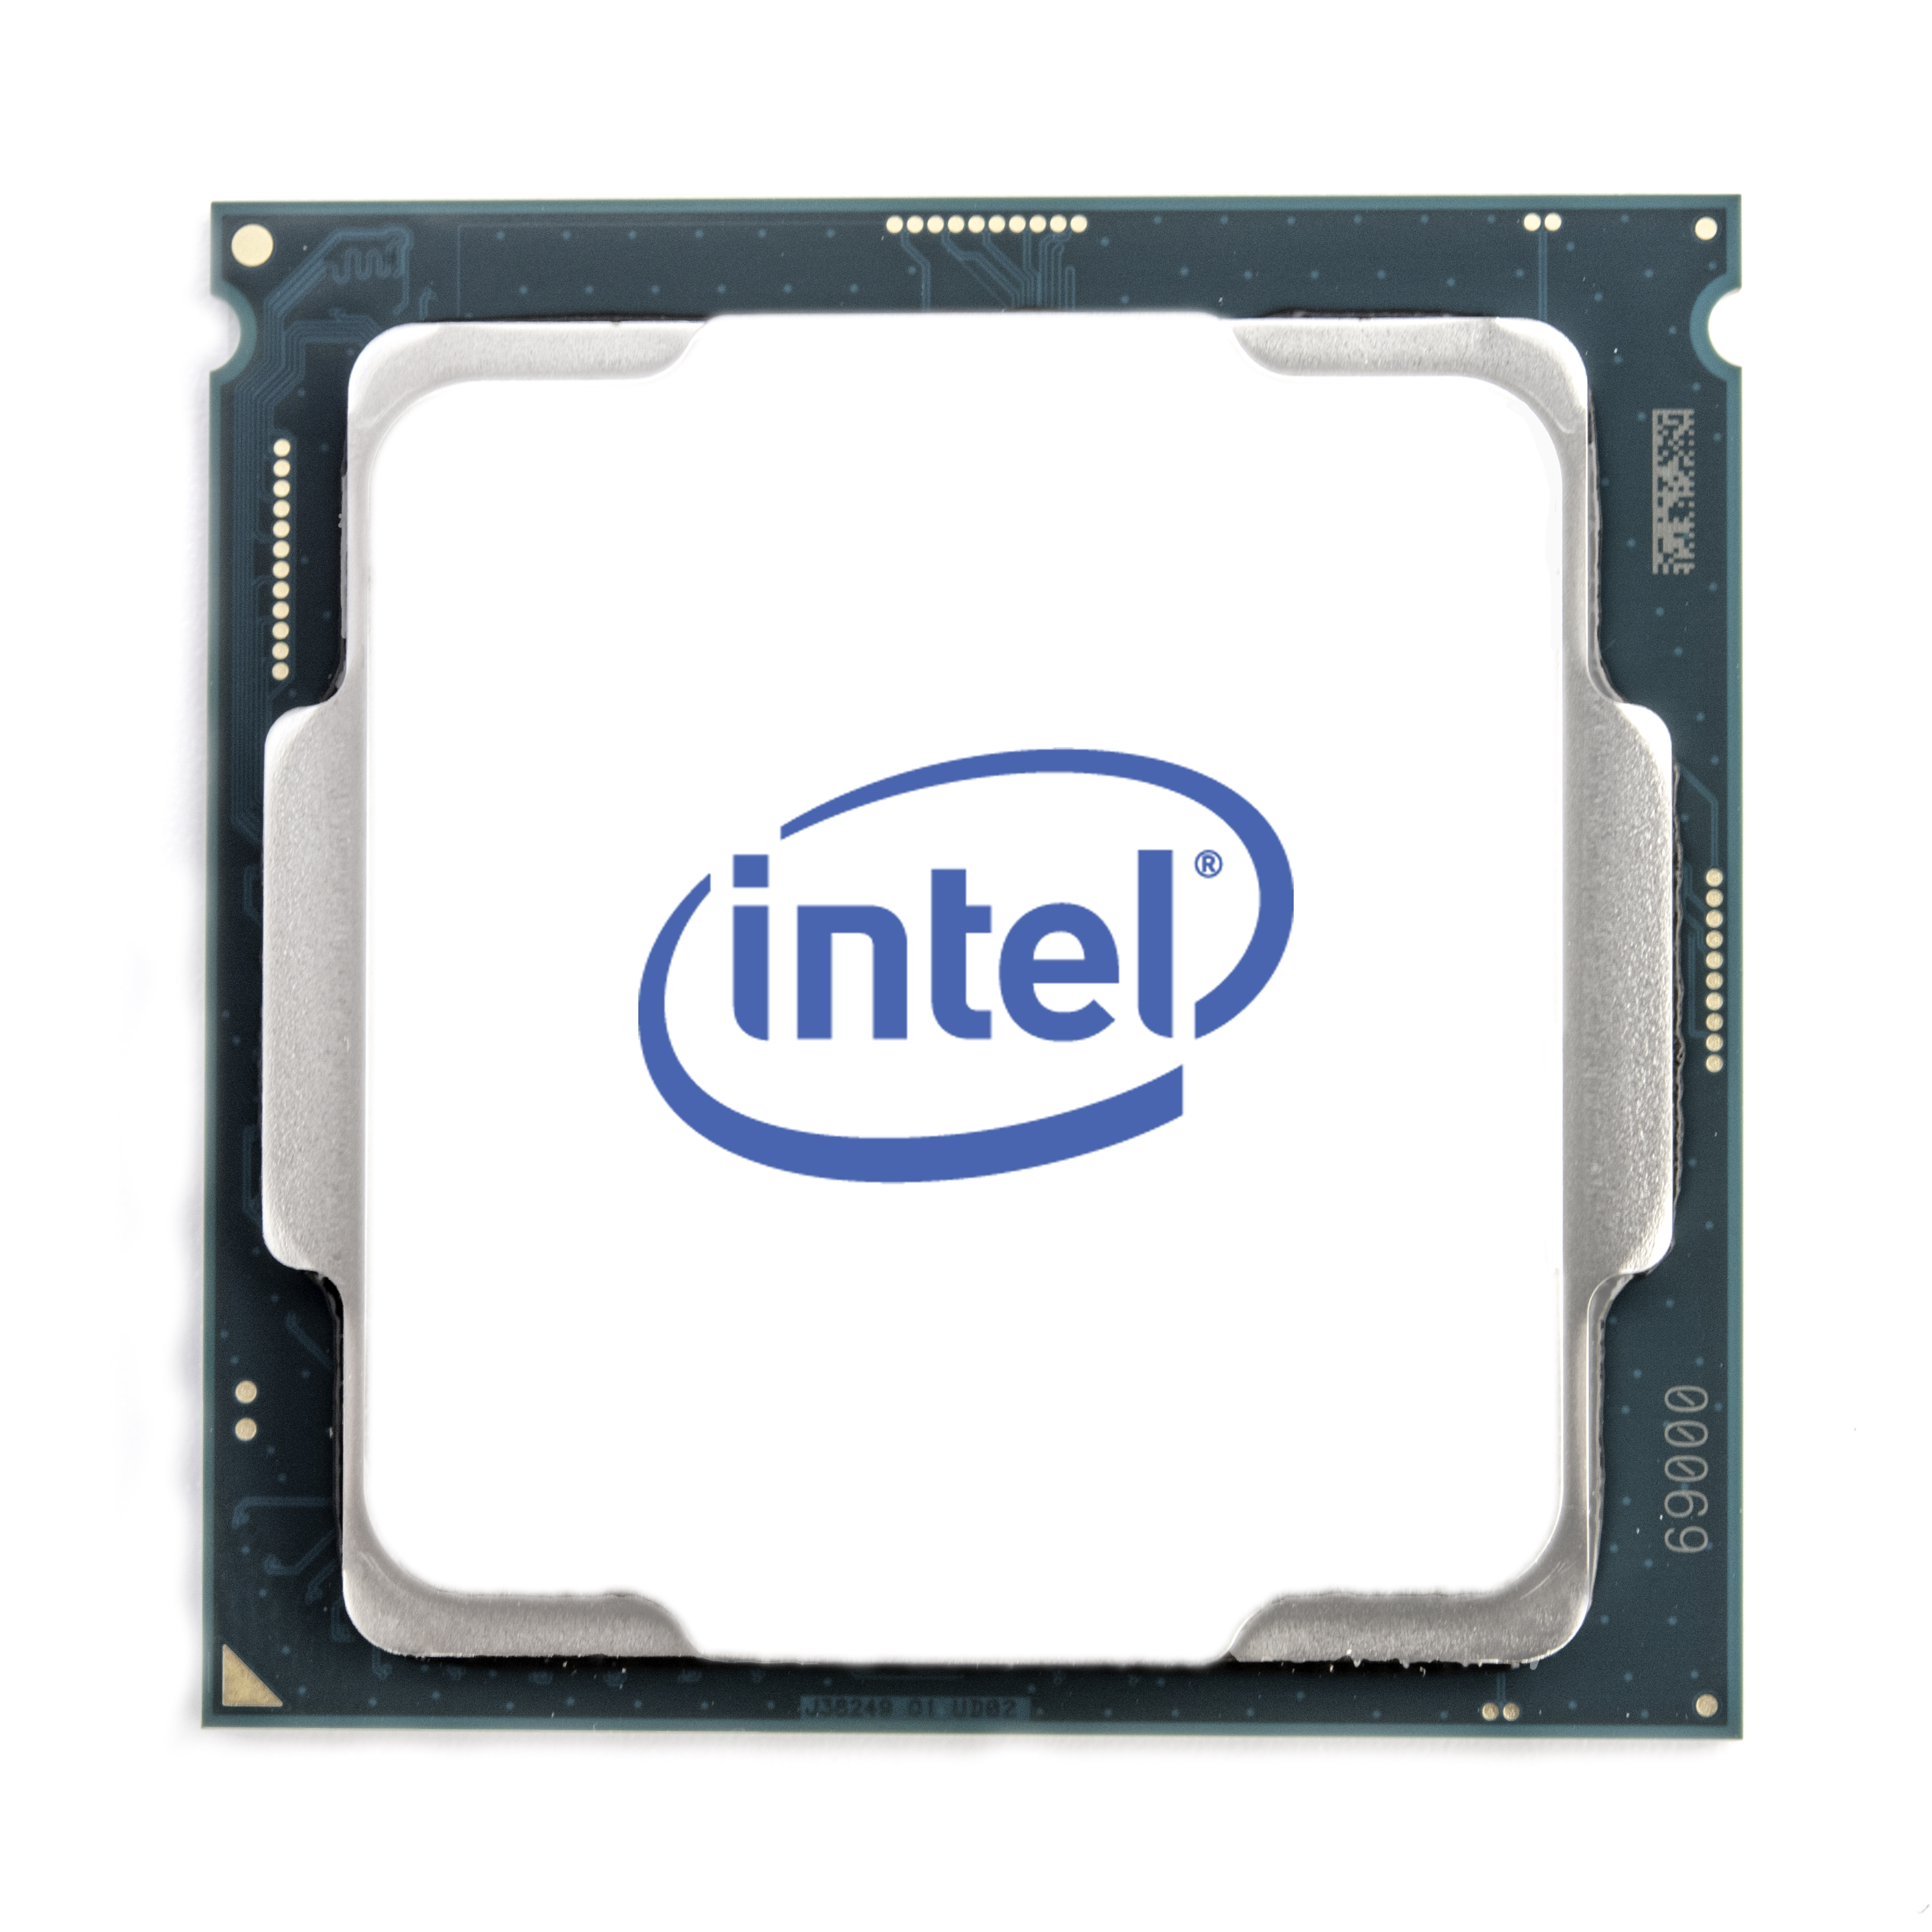 Intel Core i5-11600, 6C/12T, 2,8/4,8 GHz, 12 MB, 65 W, S1200, UHD Graphics 750, 350/1300 Boxed